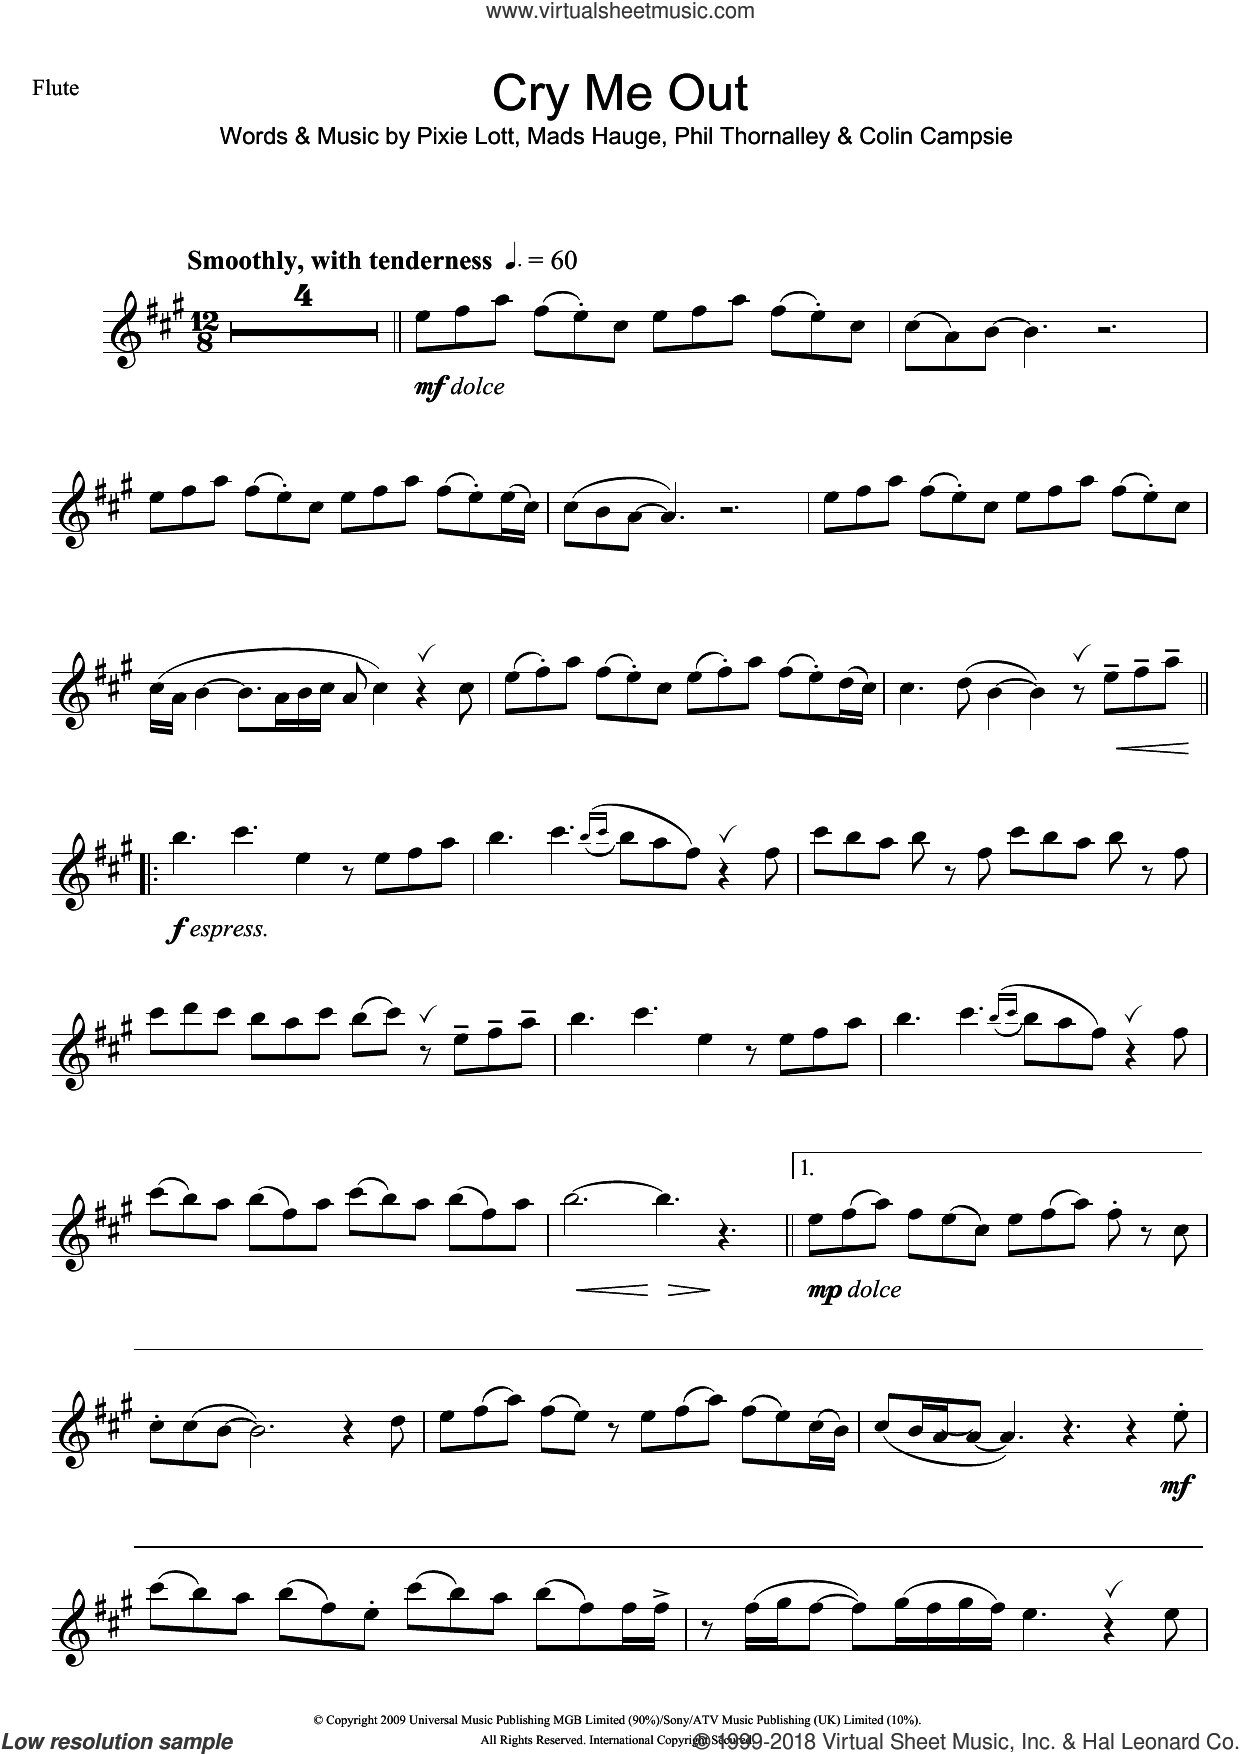 Cry Me Out sheet music for flute solo by Pixie Lott, Colin Campsie, Mads Hauge and Phil Thornalley, intermediate skill level